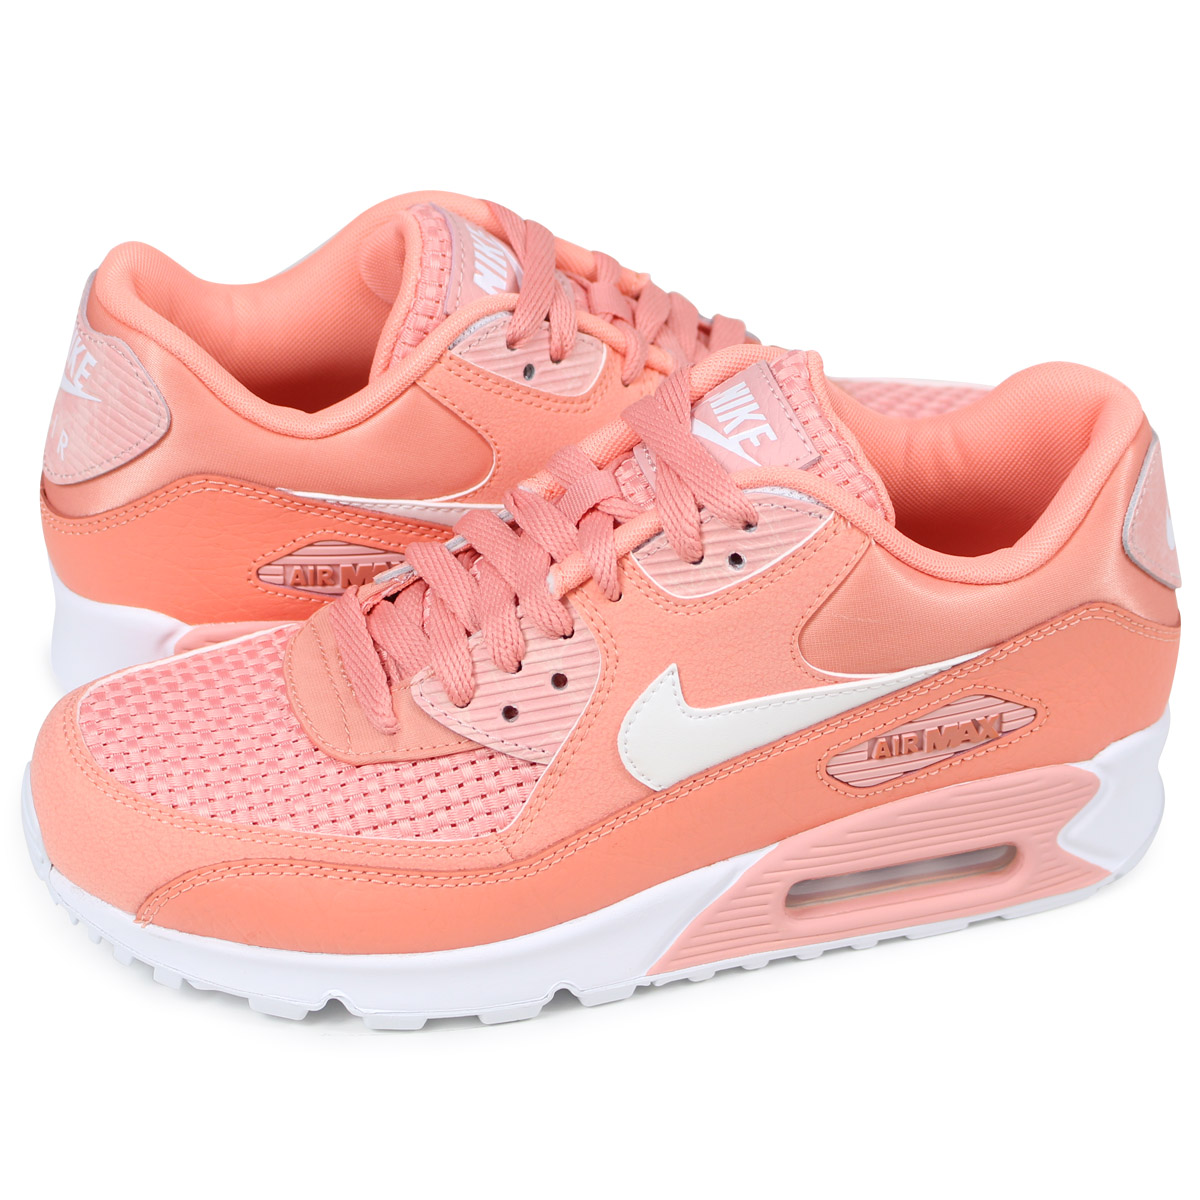 NIKE WMNS AIR MAX 90 SE Kie Ney AMAX 90 Lady's sneakers 881,105 604 pink [load planned Shinnyu load in reservation product 512 containing]